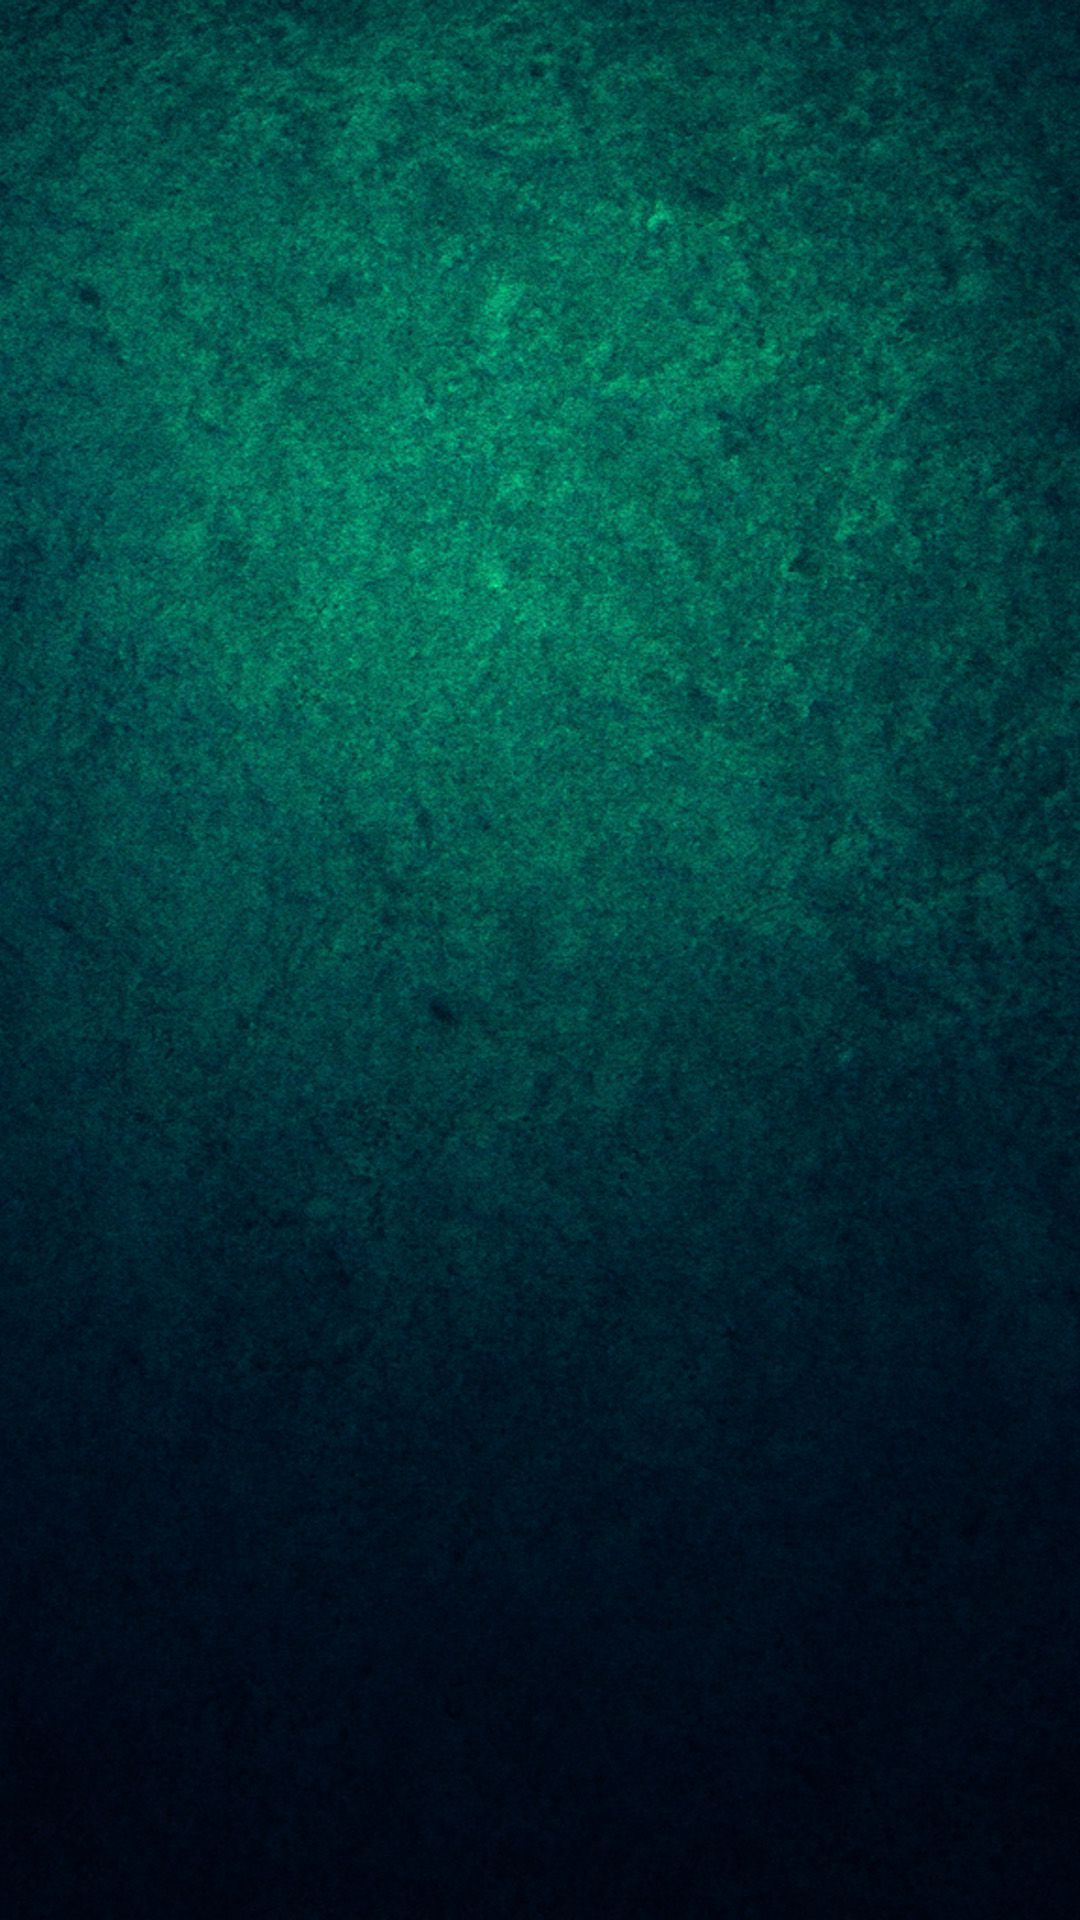 Green Iphone Background Green Iphone Background Wallpaper Android In 2020 Dark Teal Iphone Wallpaper Abstract Iphone Wallpaper Gold Wallpaper Android